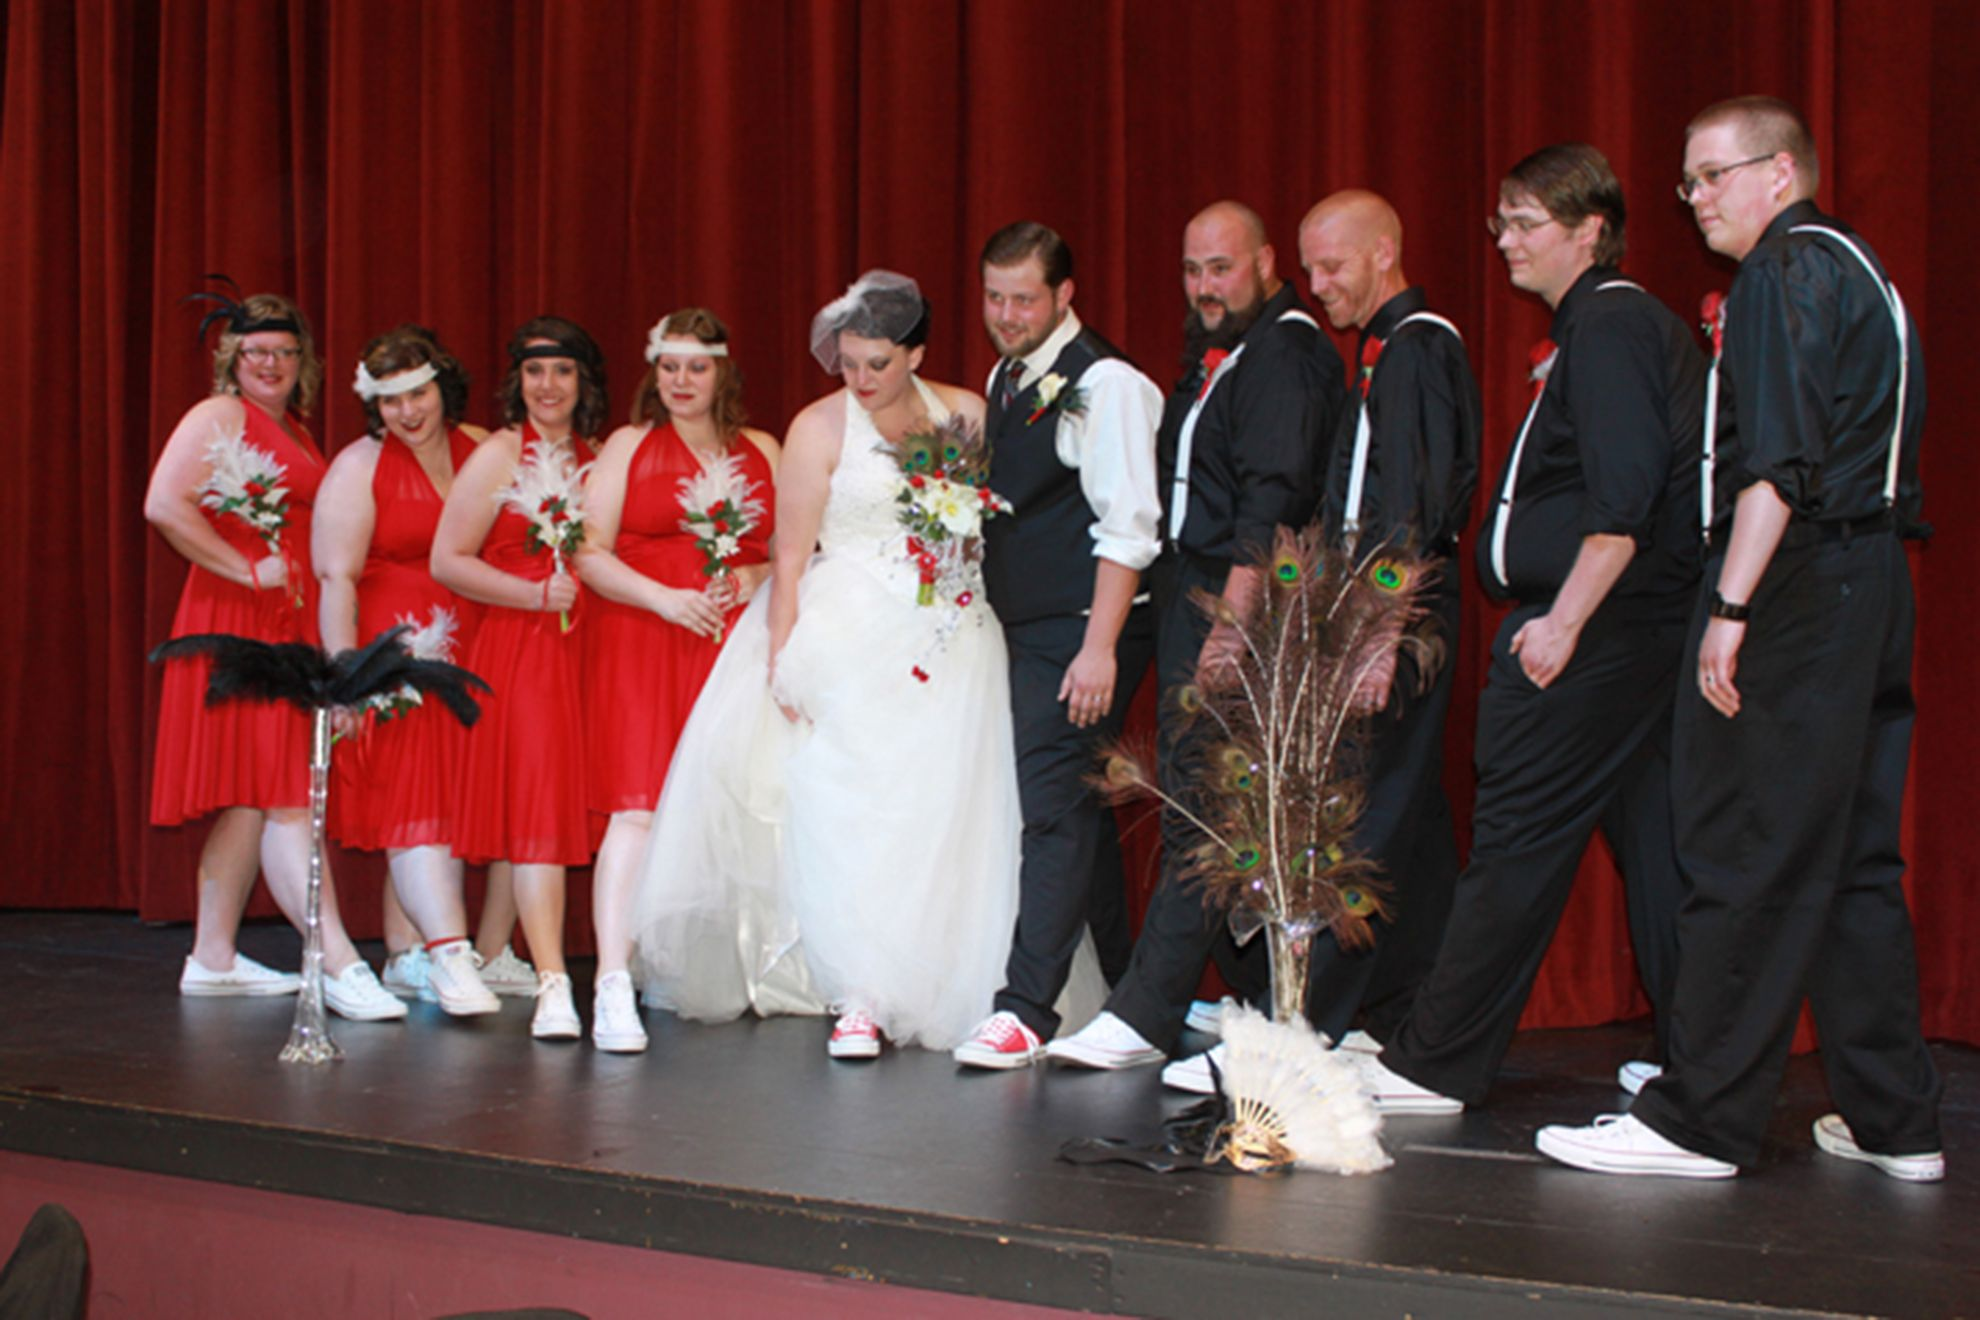 d124d2842dce Bride and groom and wedding party showing off Converse shoes on stage at  red